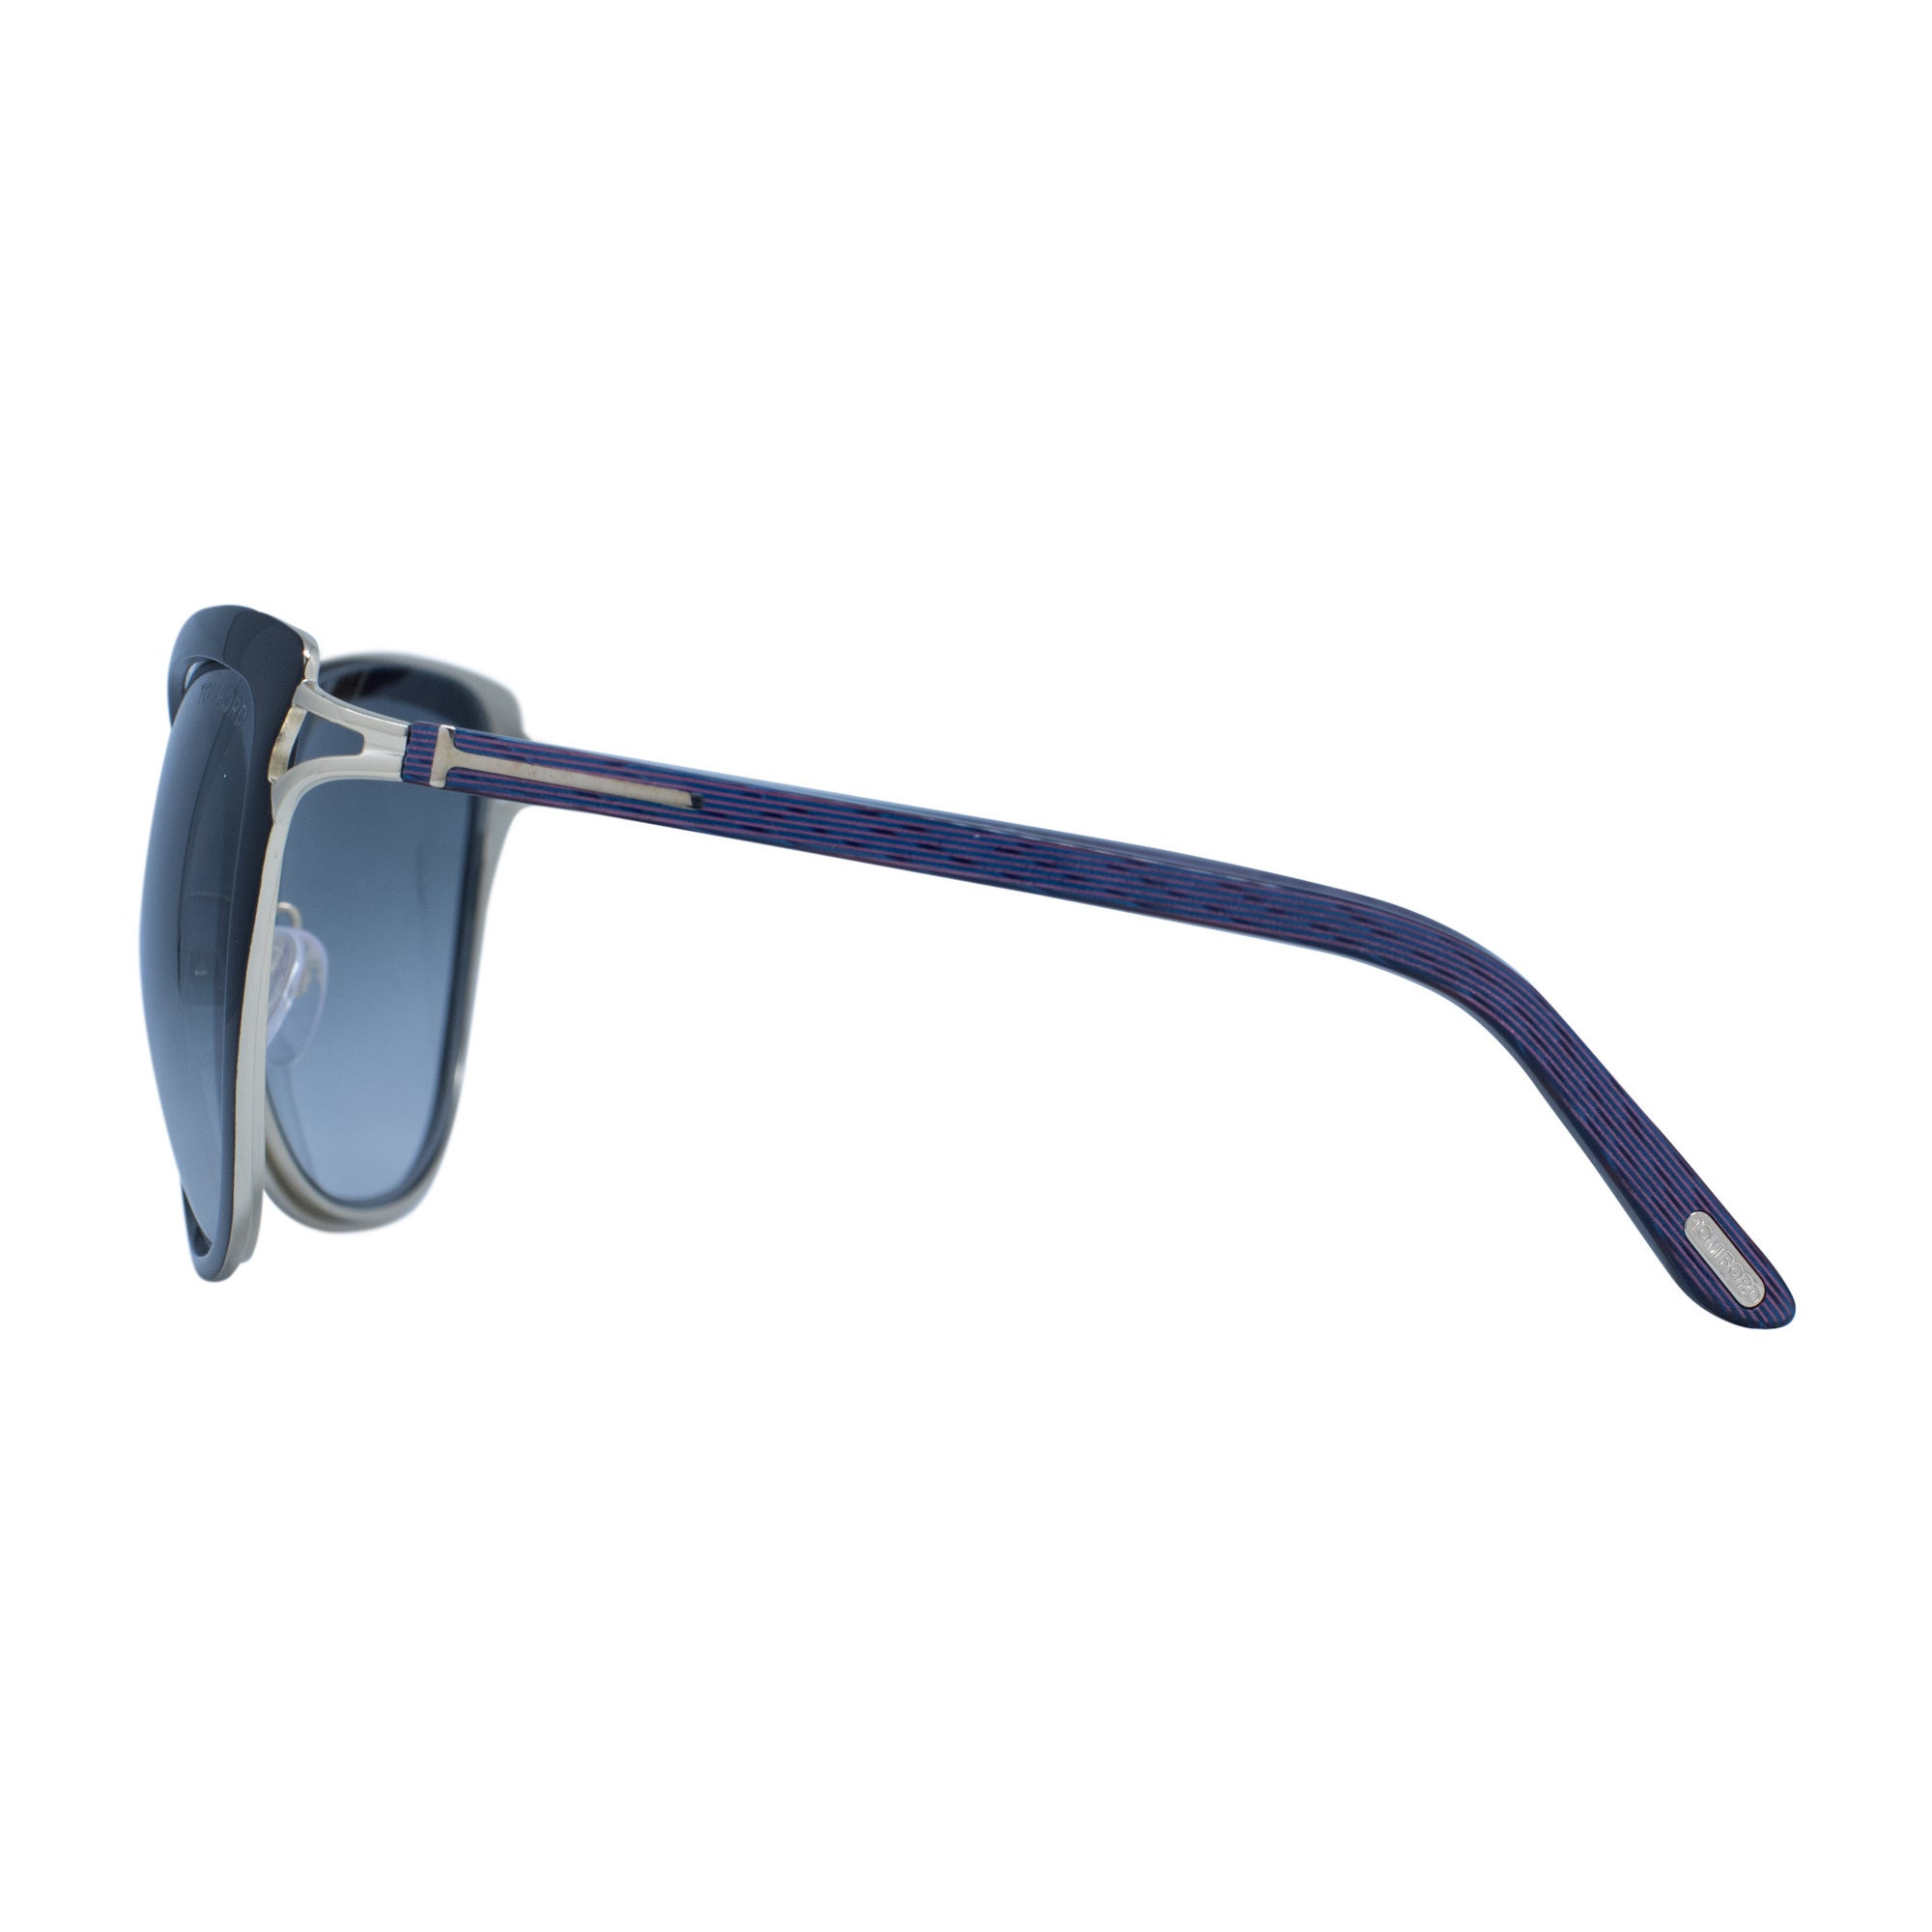 6f631eeefed870 Shop Tom Ford Sun 0322 32b Women s Black Frame Gold Detailing Gradient  Smoke Lens Sunglasses - Free Shipping Today - Overstock.com - 16692932